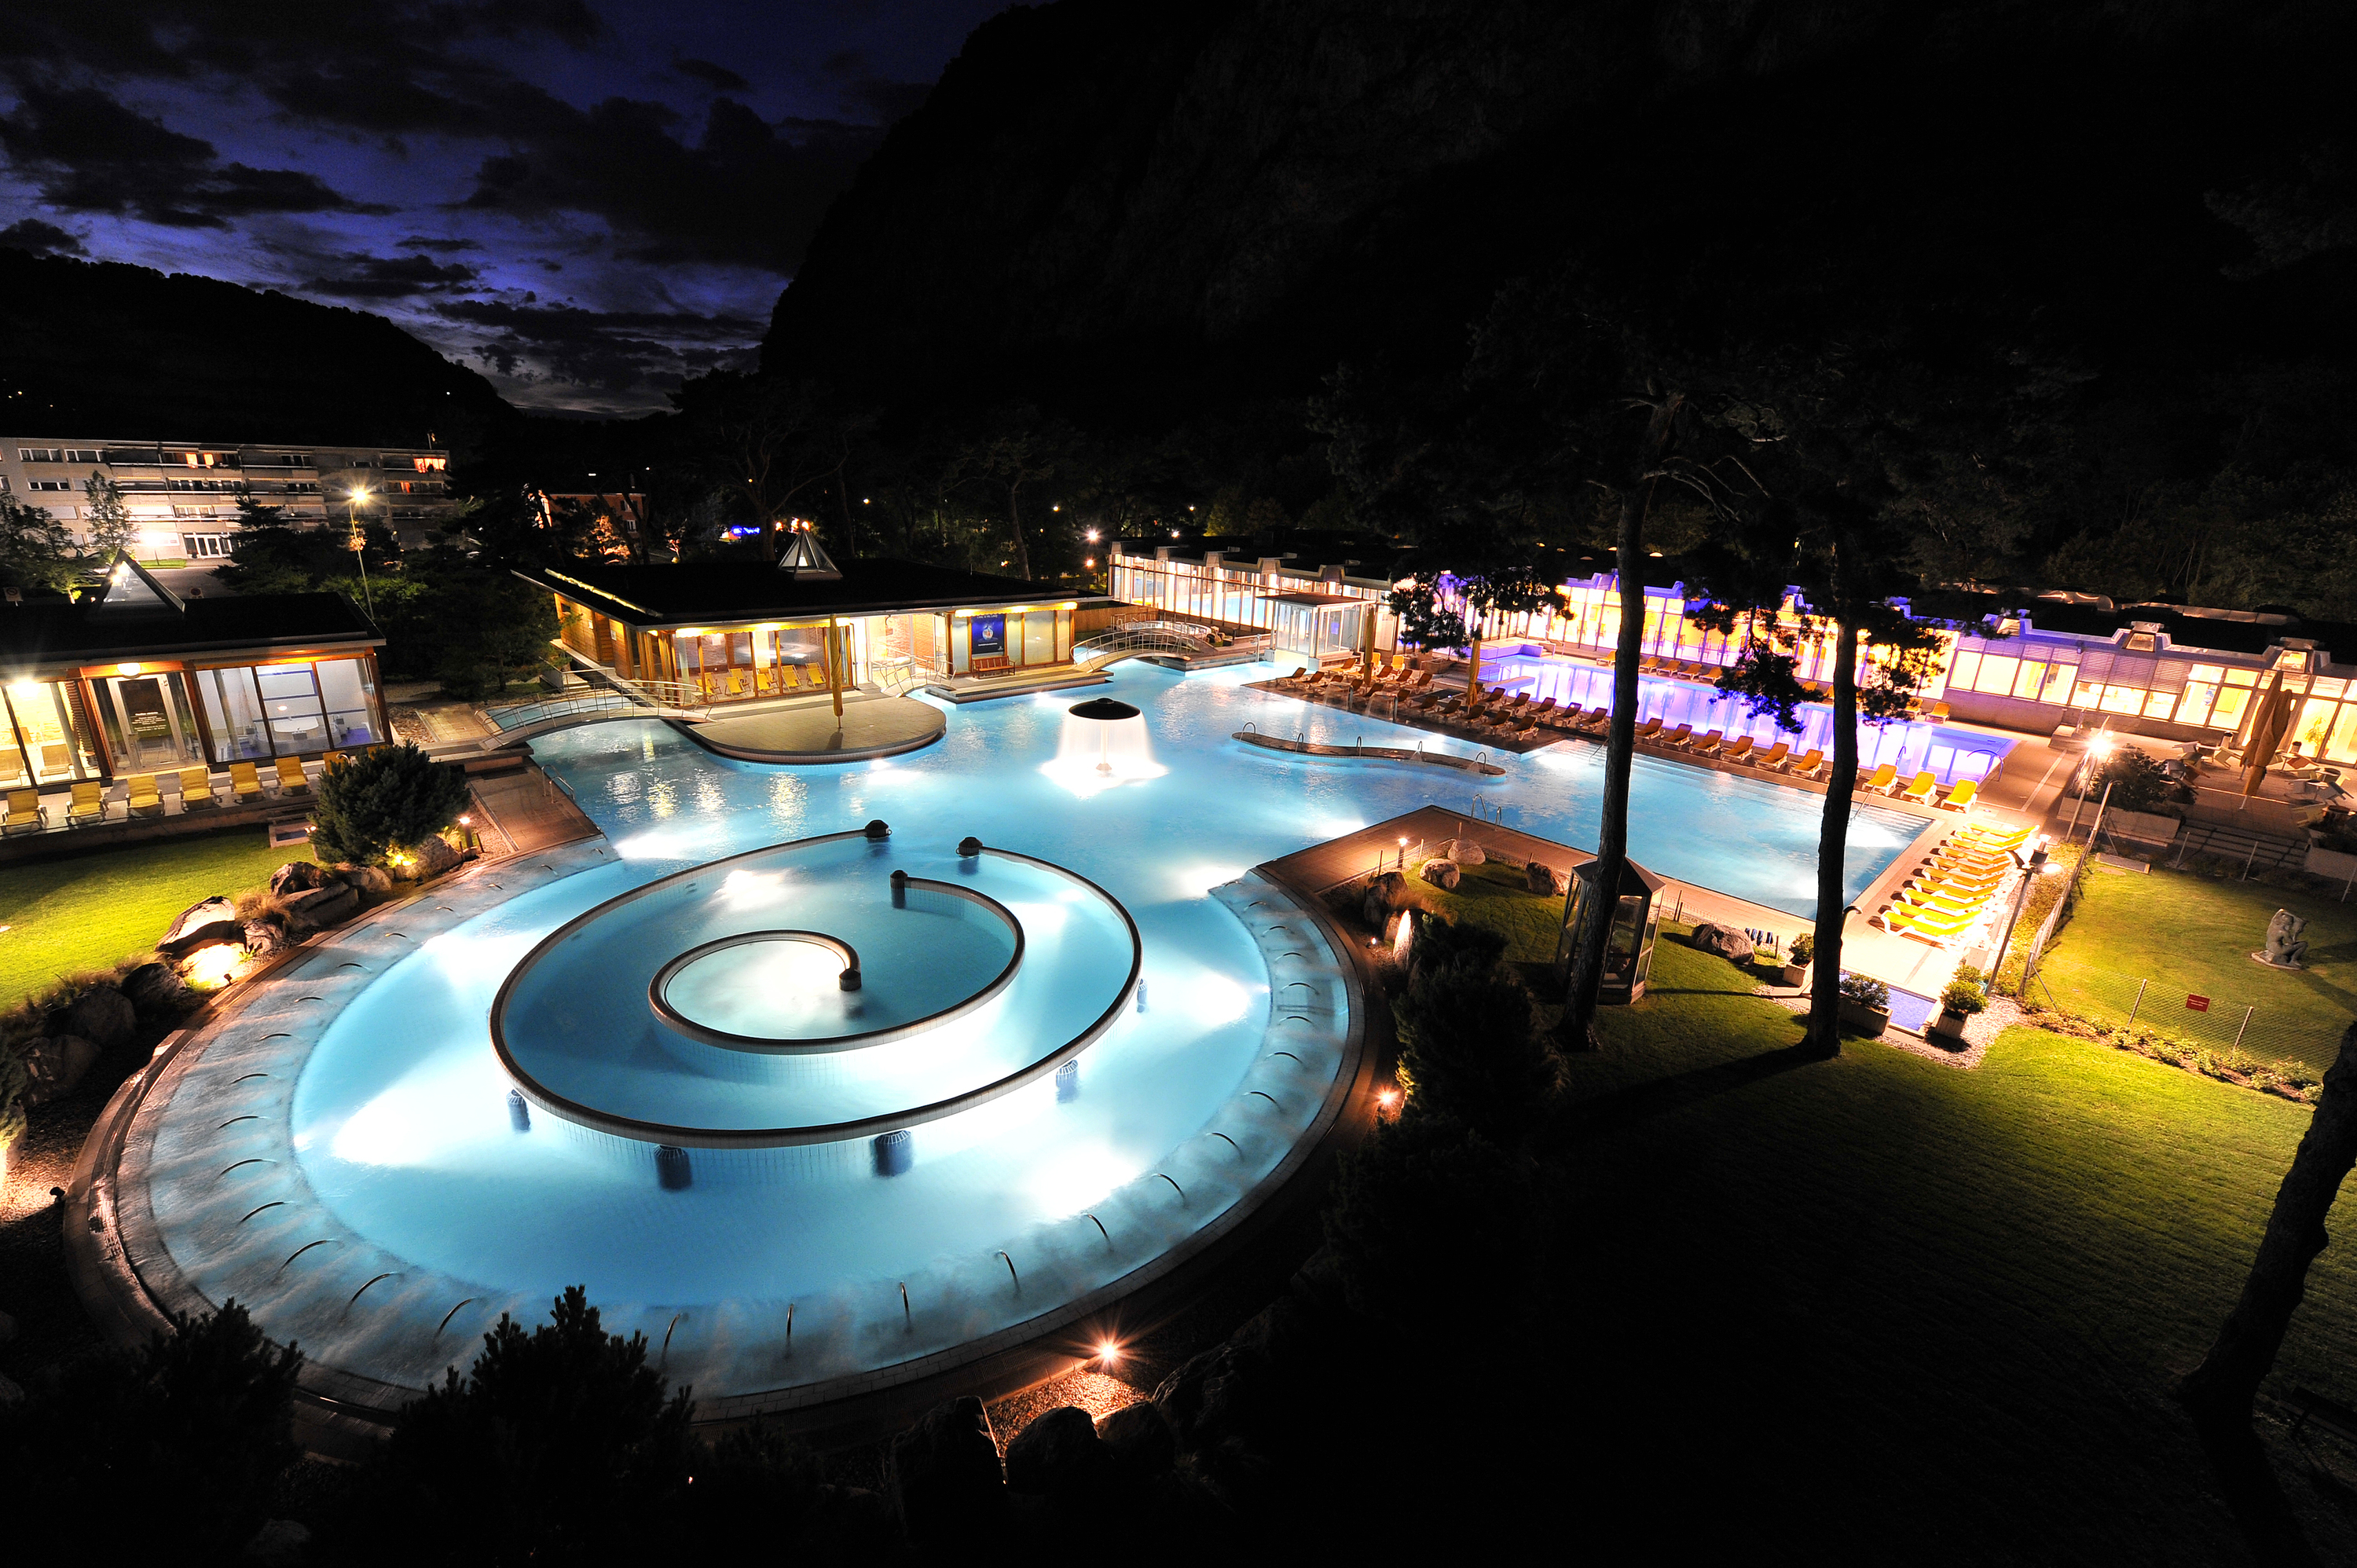 Thermal baths in switzerland best spas and wellness - Piscine de charbonnieres les bains ...